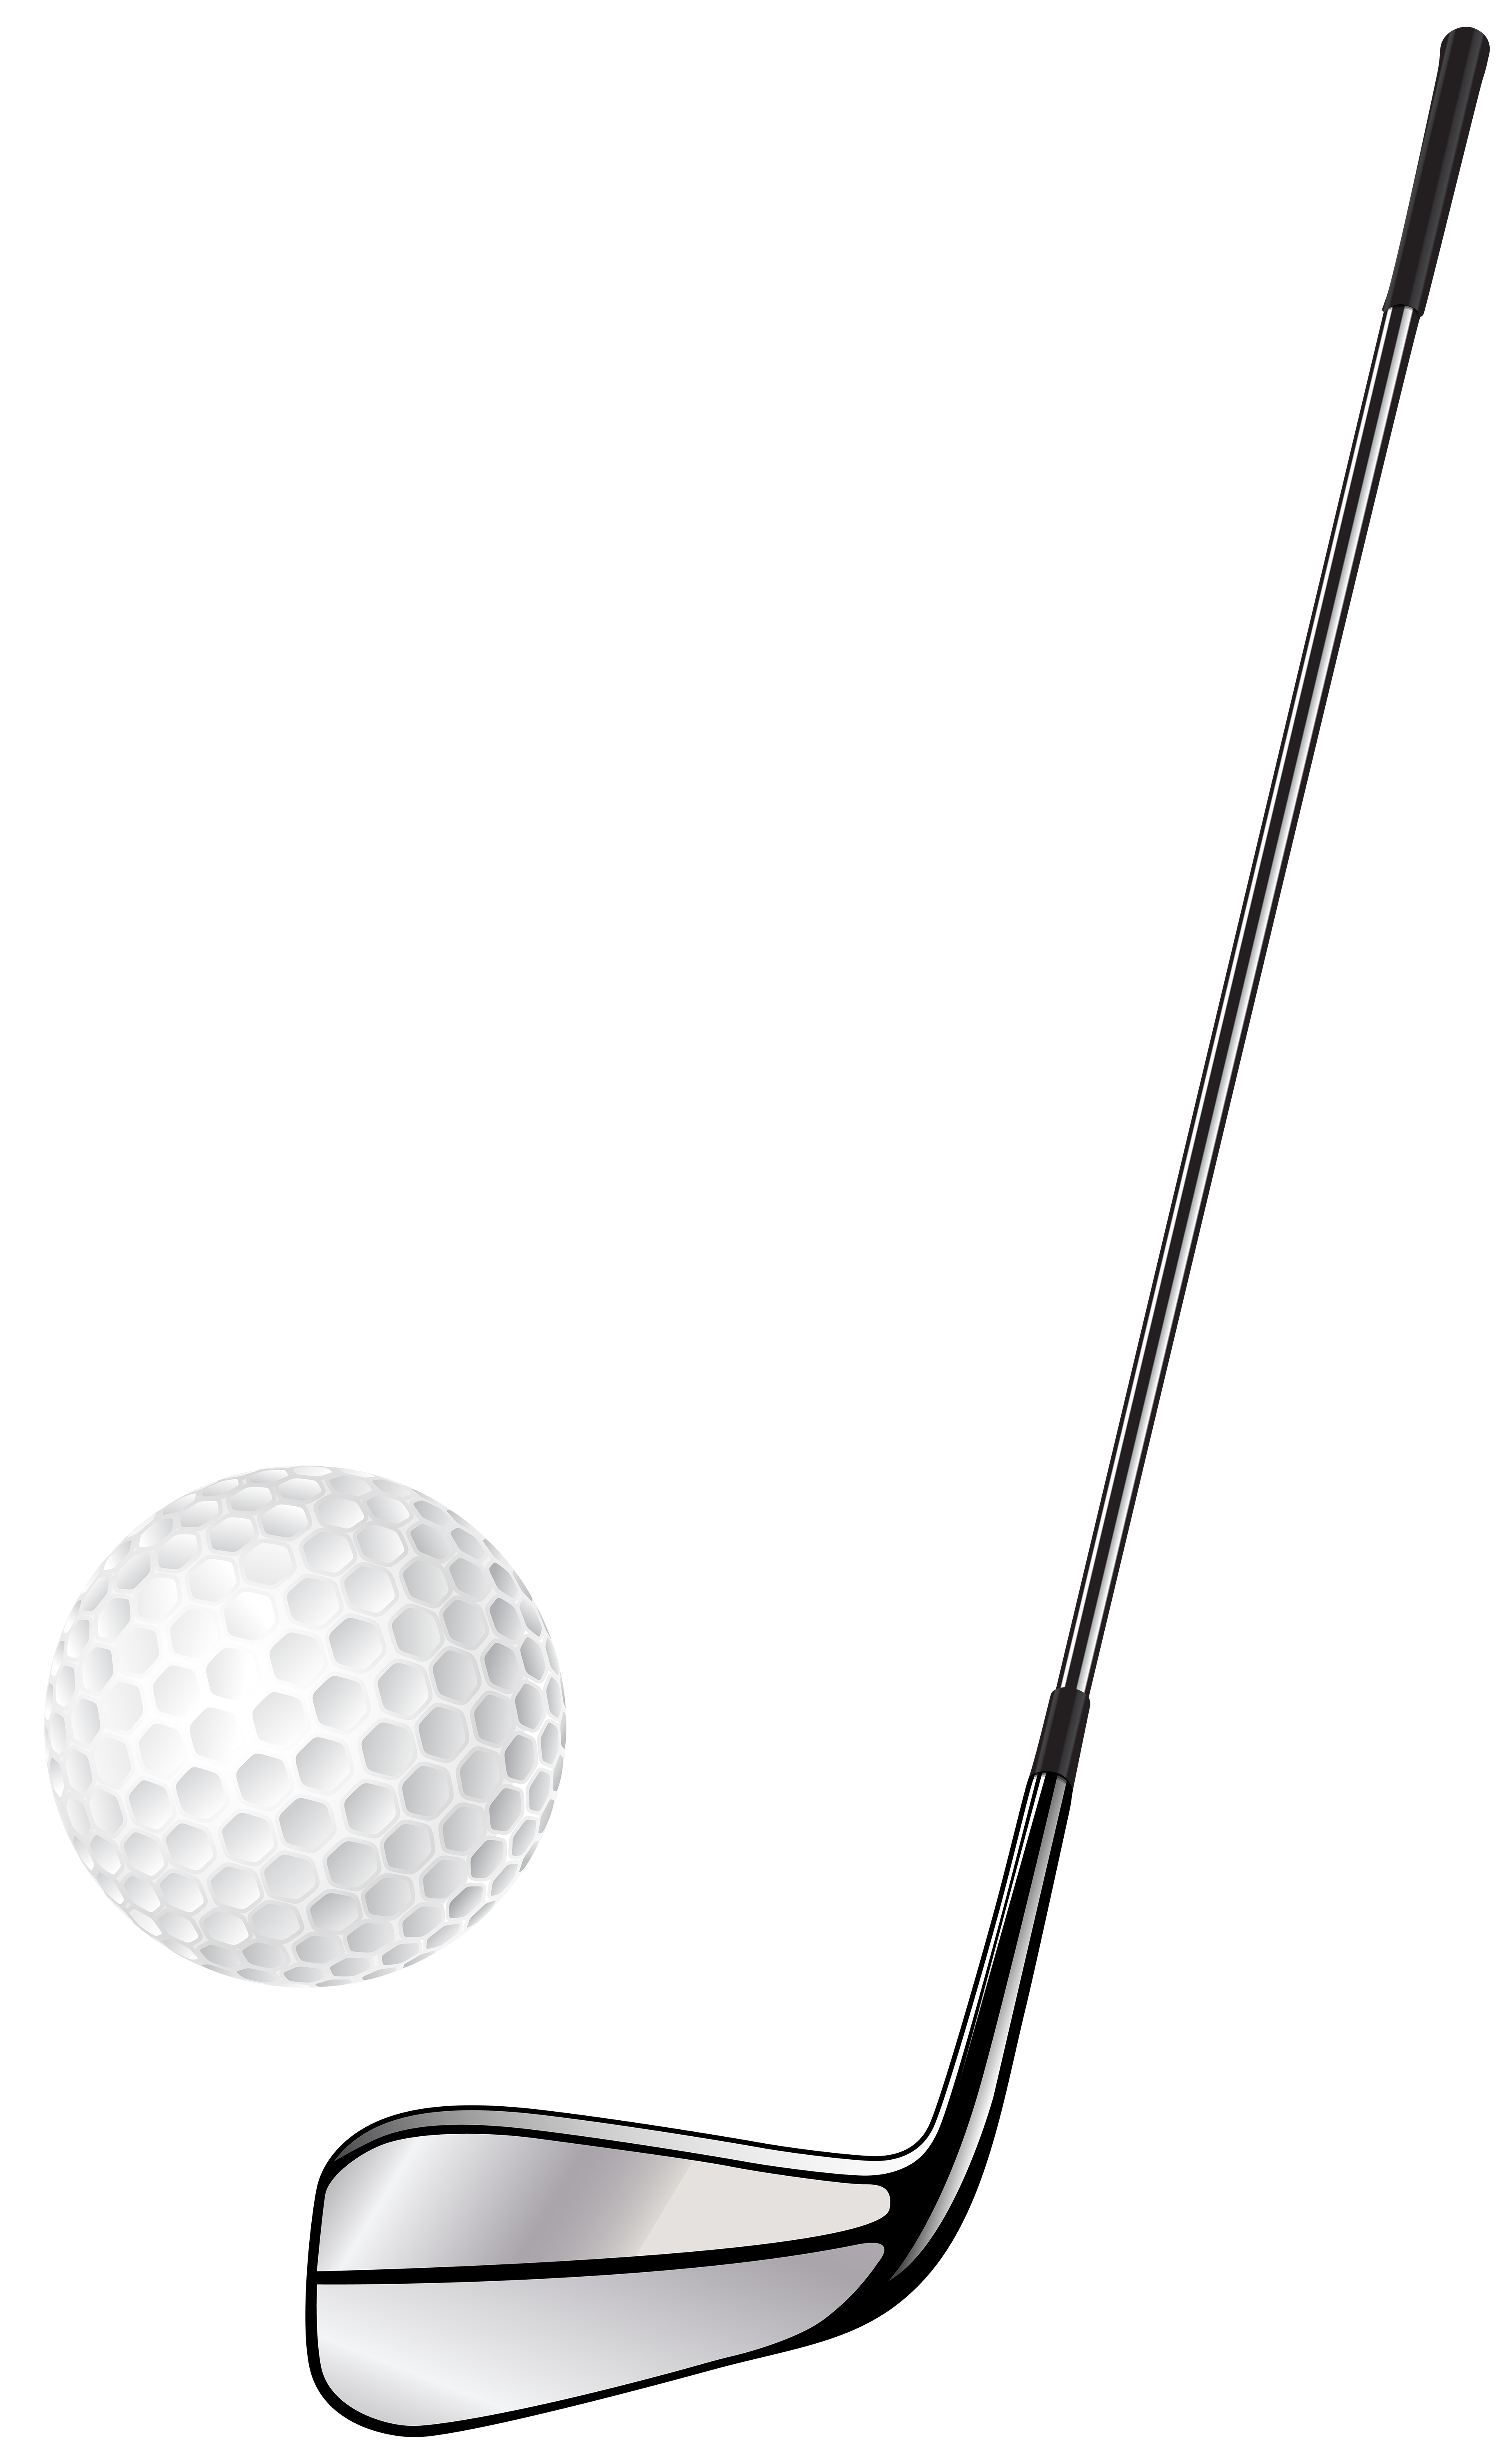 Gold club clipart banner royalty free download Golf Club Stick and Ball PNG Clip Art - Best WEB Clipart banner royalty free download